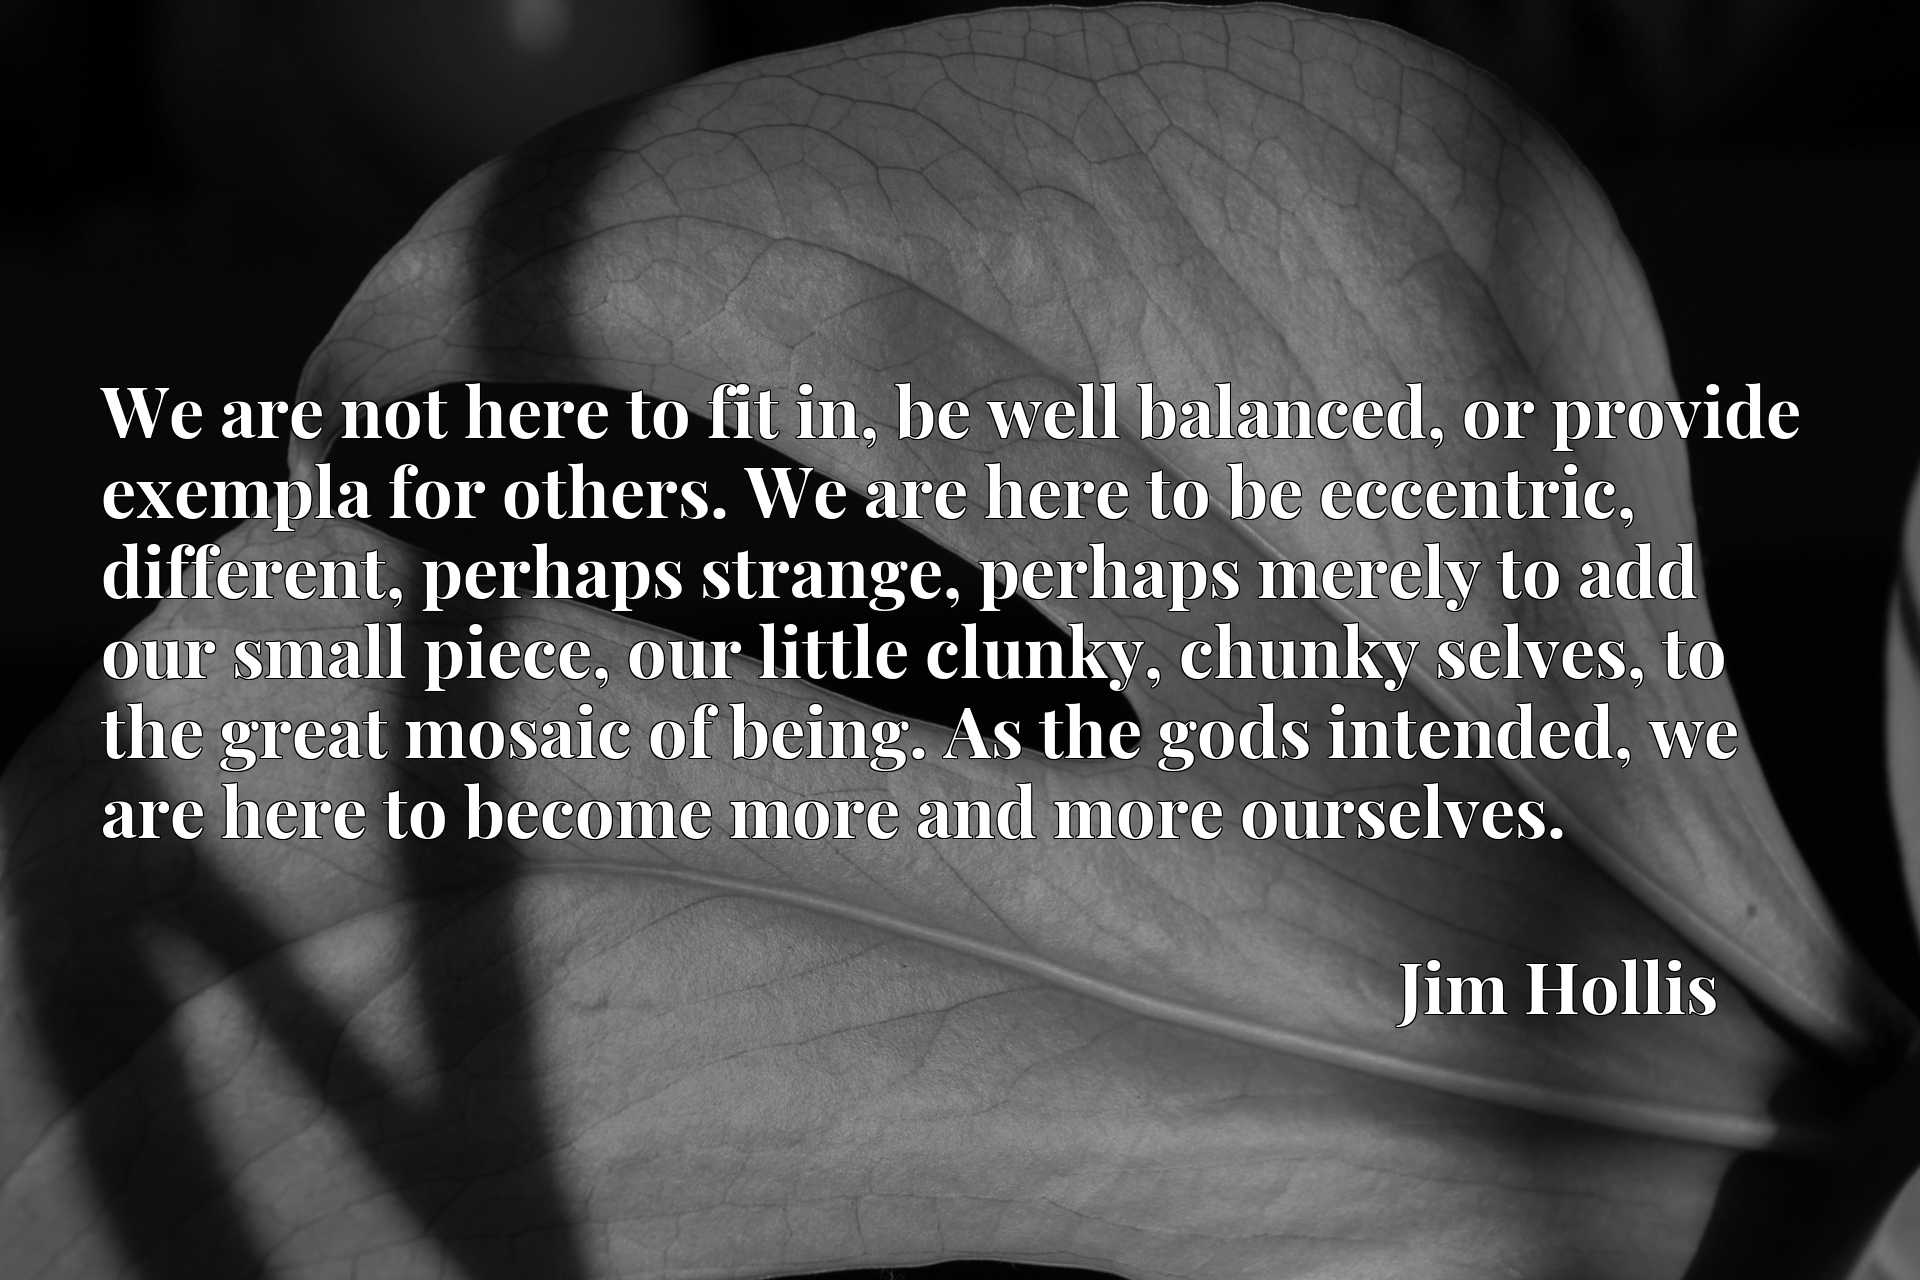 We are not here to fit in, be well balanced, or provide exempla for others. We are here to be eccentric, different, perhaps strange, perhaps merely to add our small piece, our little clunky, chunky selves, to the great mosaic of being. As the gods intended, we are here to become more and more ourselves.